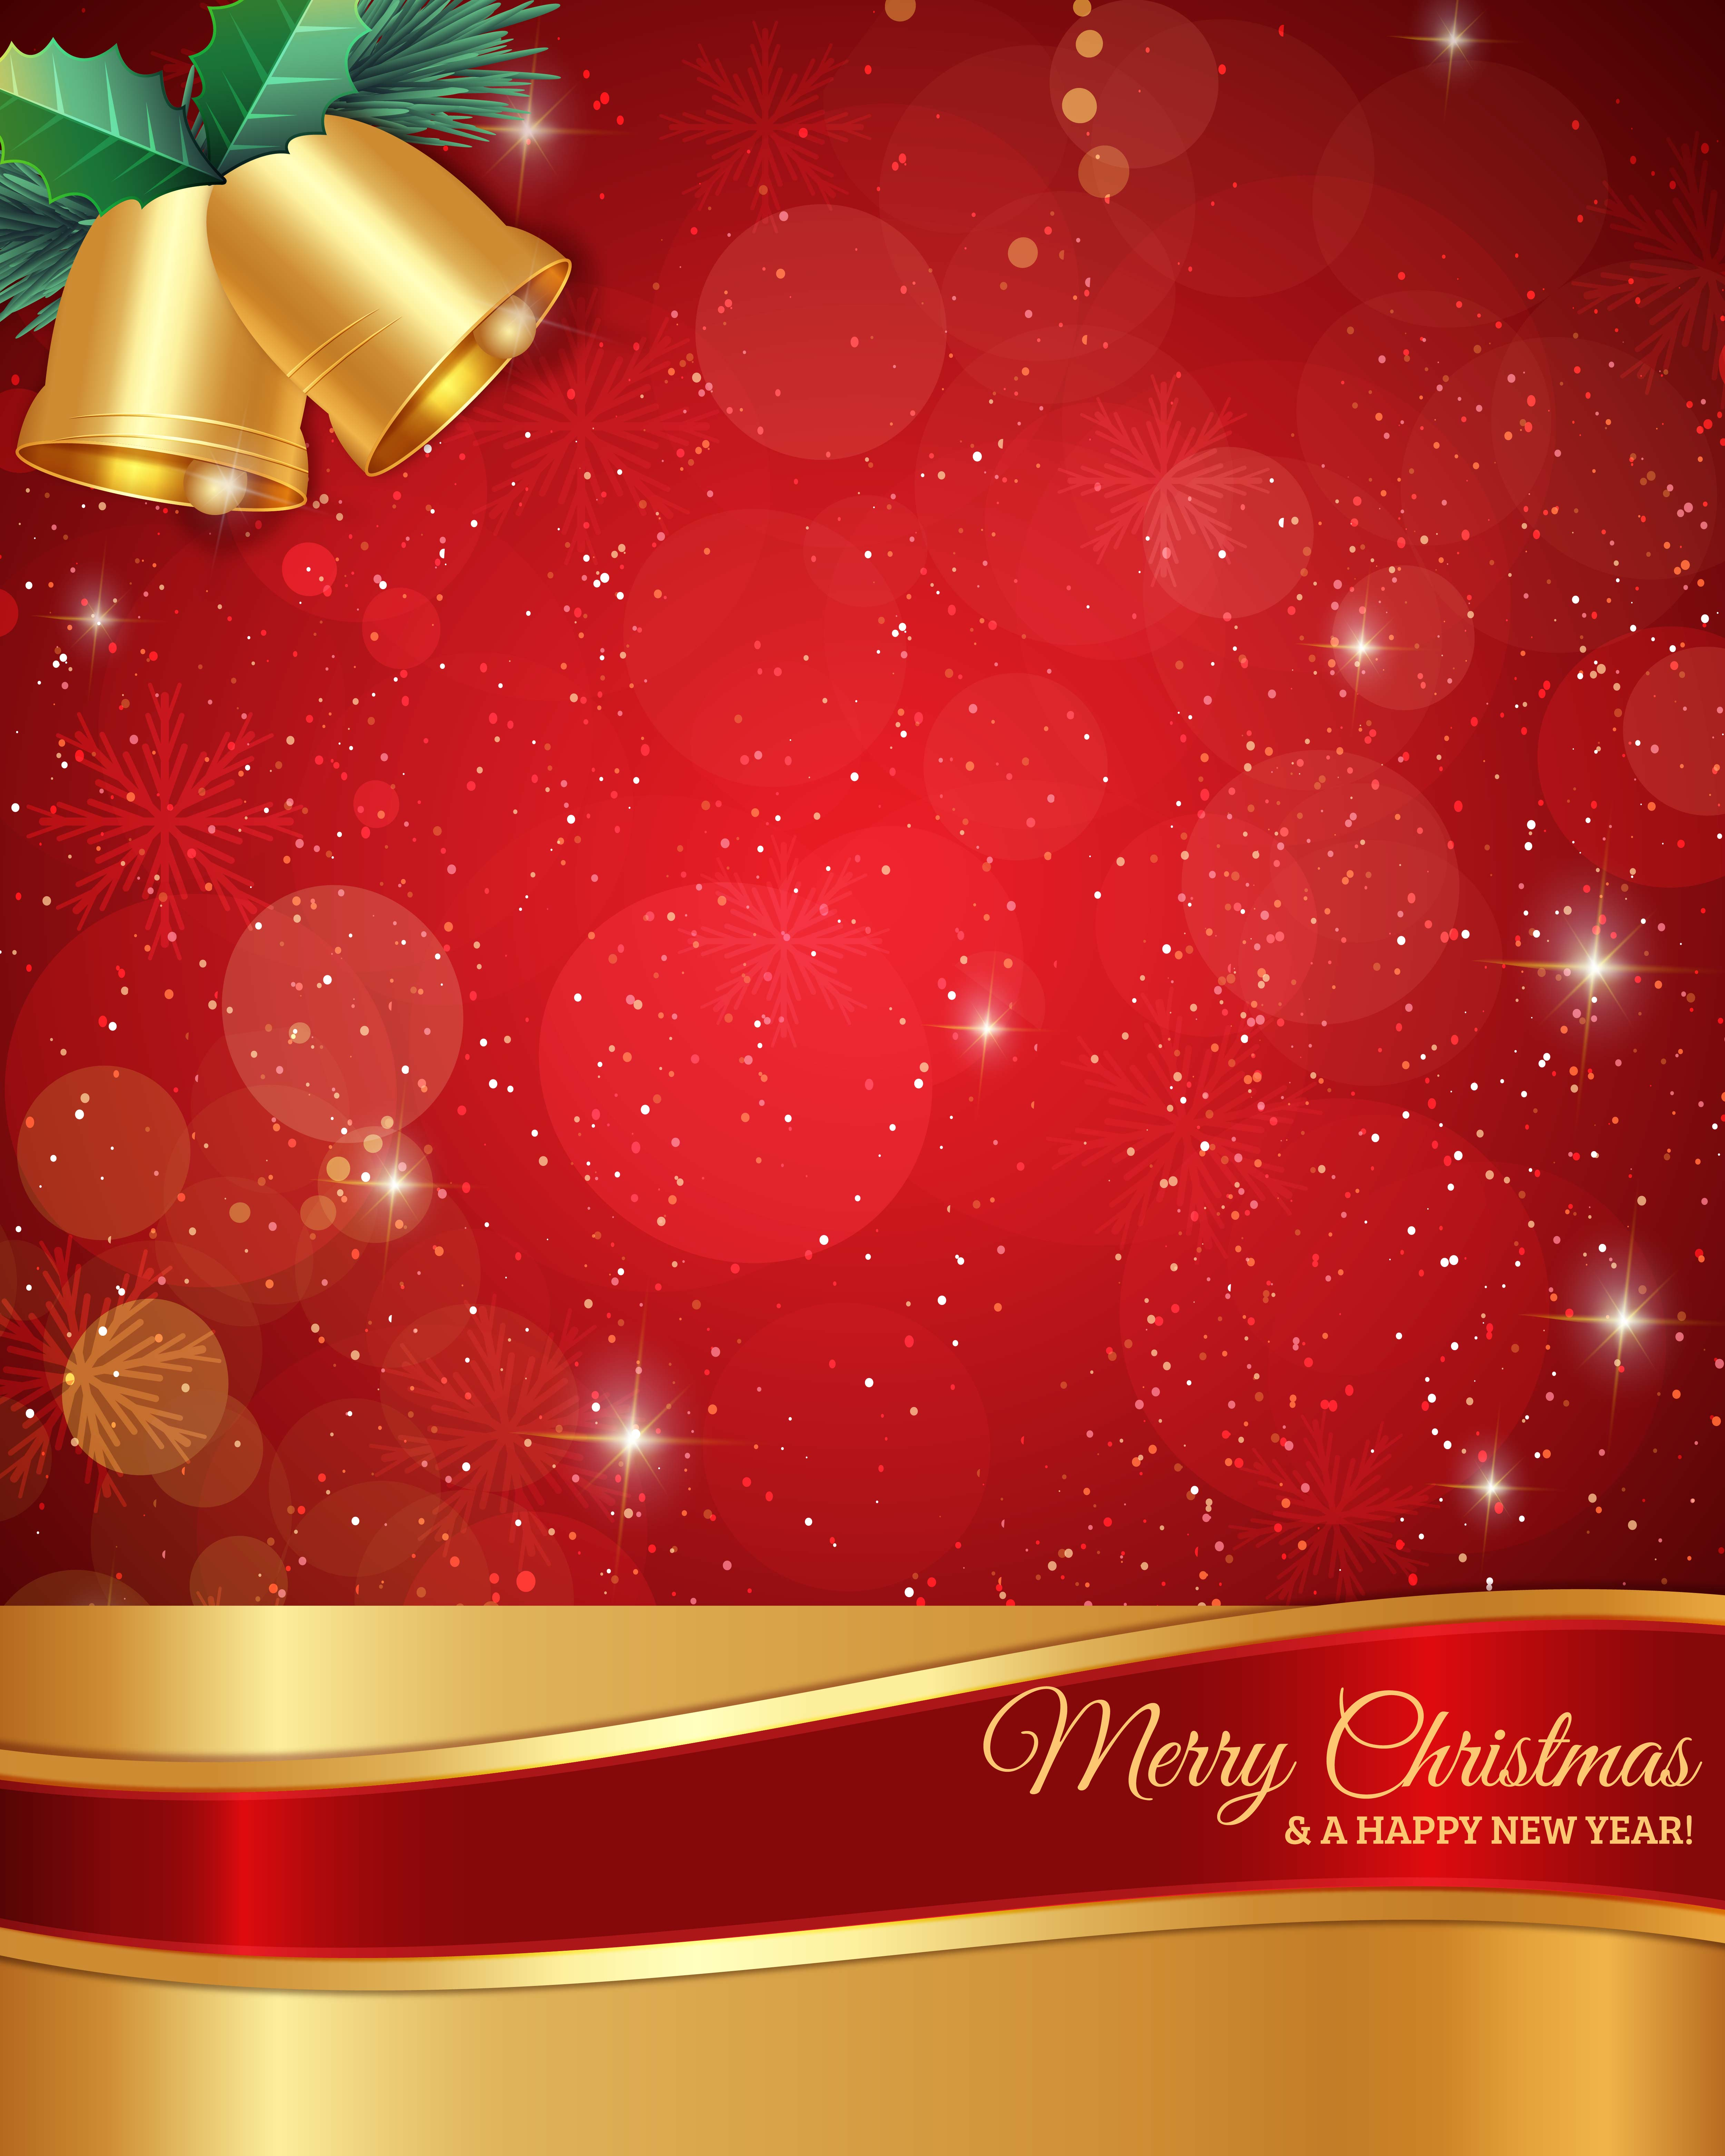 Elegant Christmas Background Images.Us 9 31 33 Off Allenjoy Photography Backdrops Winter Red Xmas Elegant Kids Holiday Photocall Baby Shower Digital Printing Christmas Backgrounds In